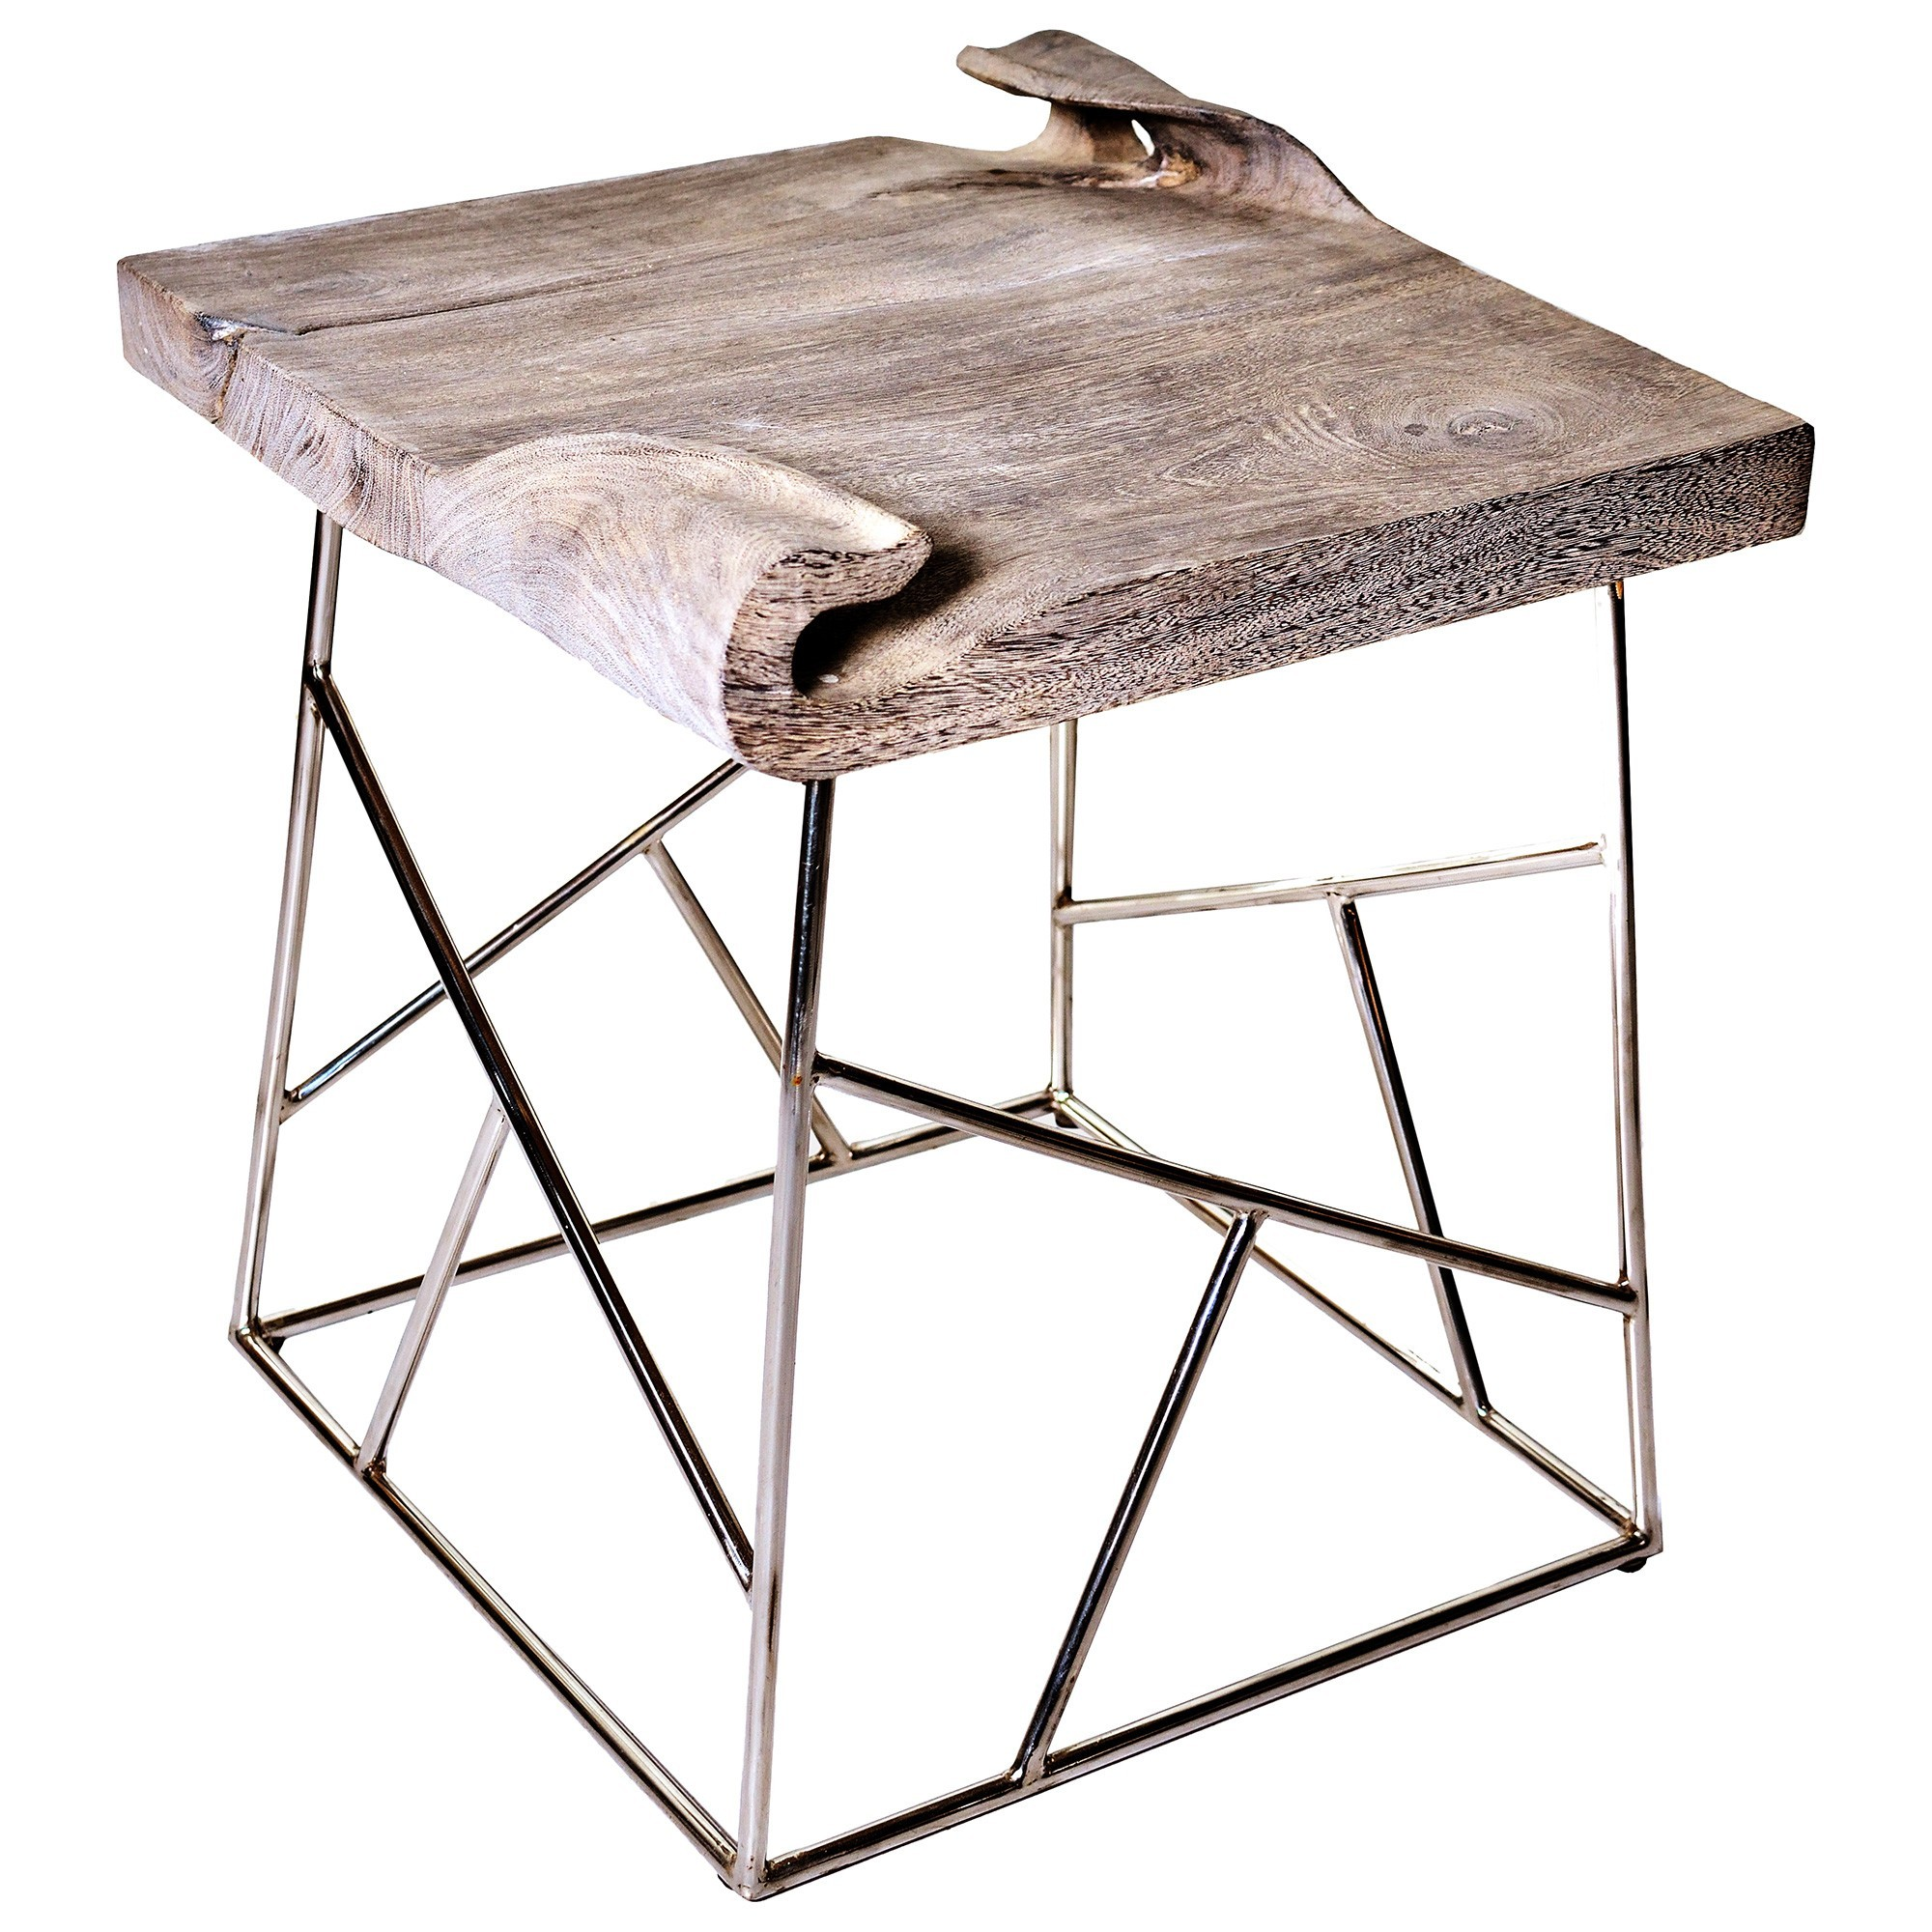 Turned Suar Wood & Stainless Steel Side Table